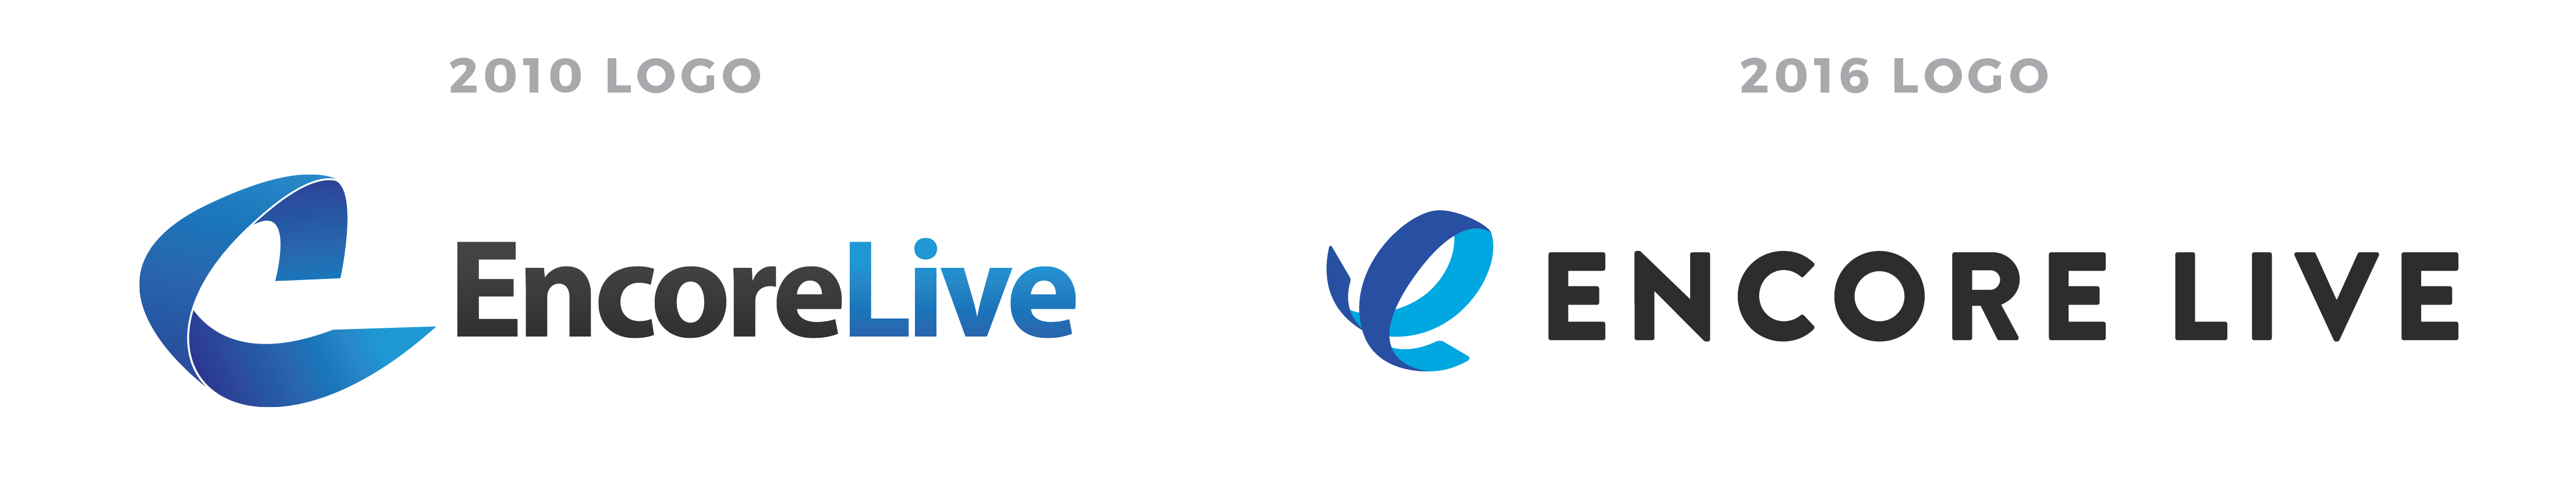 Encore Live logo comparison